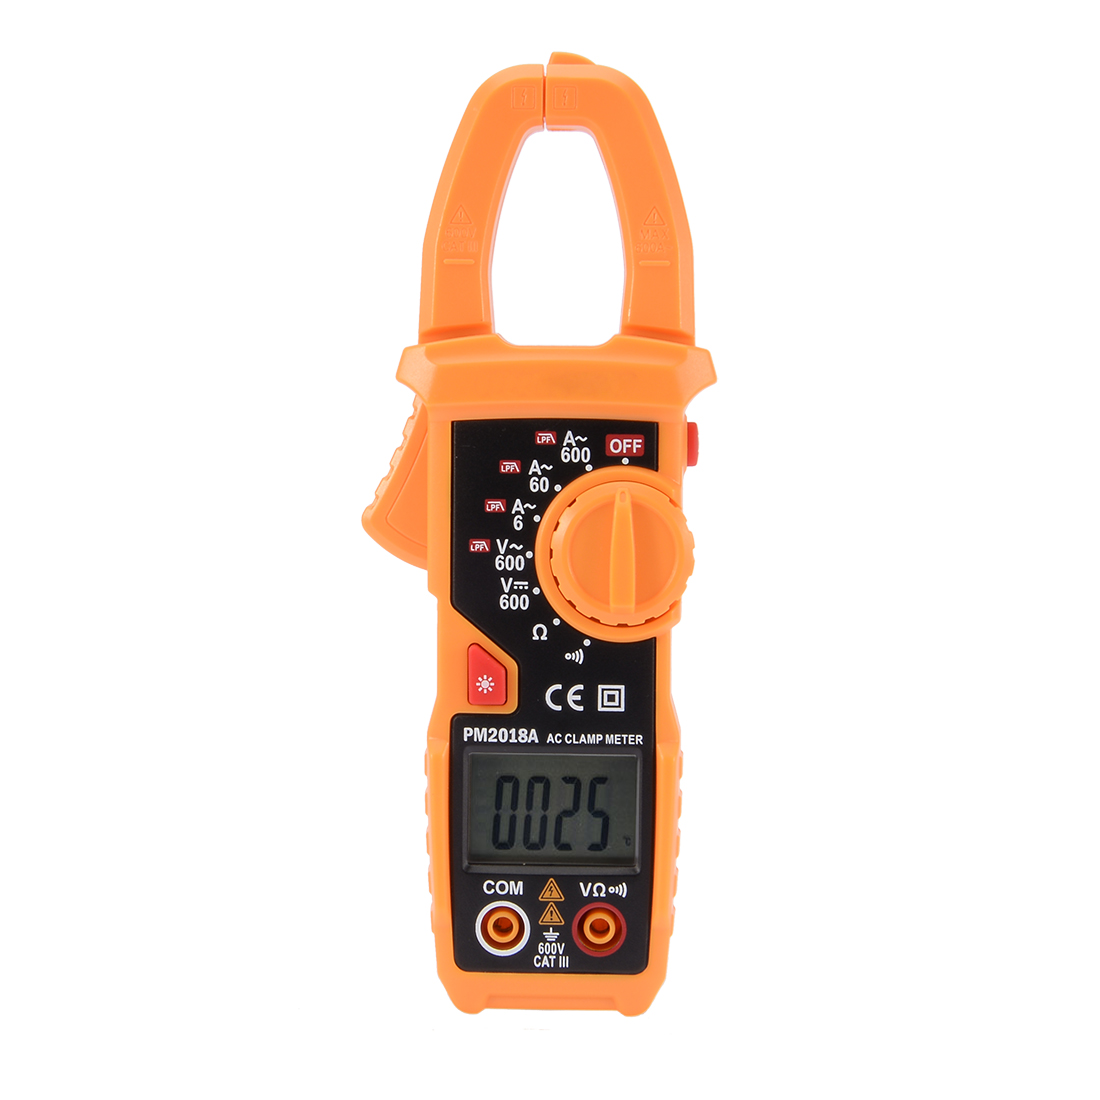 PEAKMETER Authorized PM2018A Digital Multimeter Ammeter Voltage Ohmmeter Clamp Meter Tester Handheld Orange